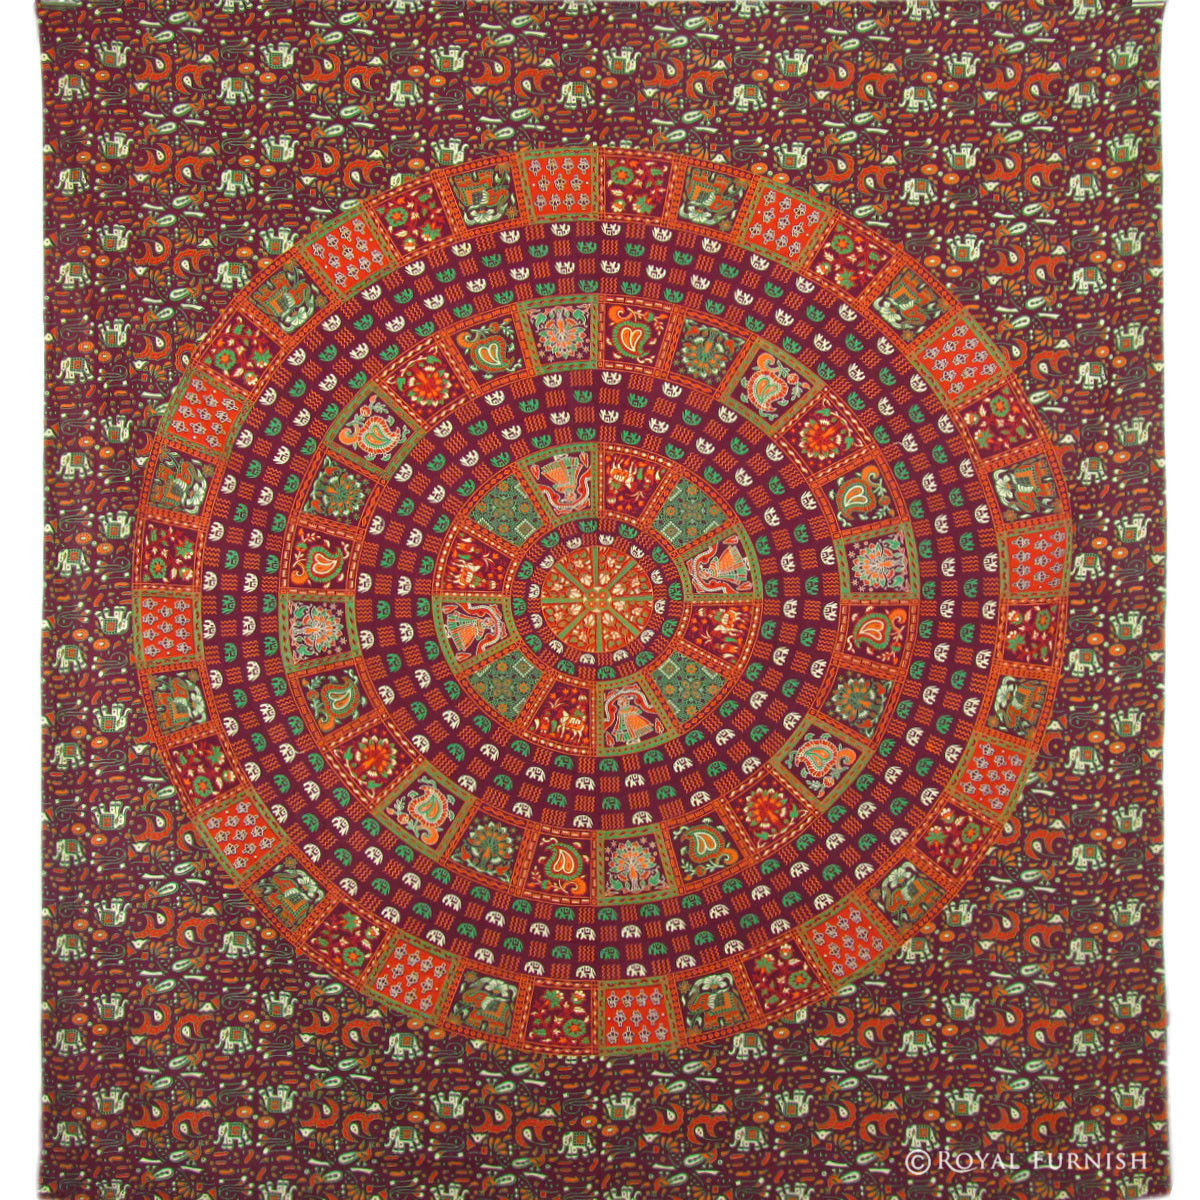 Indian Mandala Dorm Room Decor Hippie Tapestry Wall ...